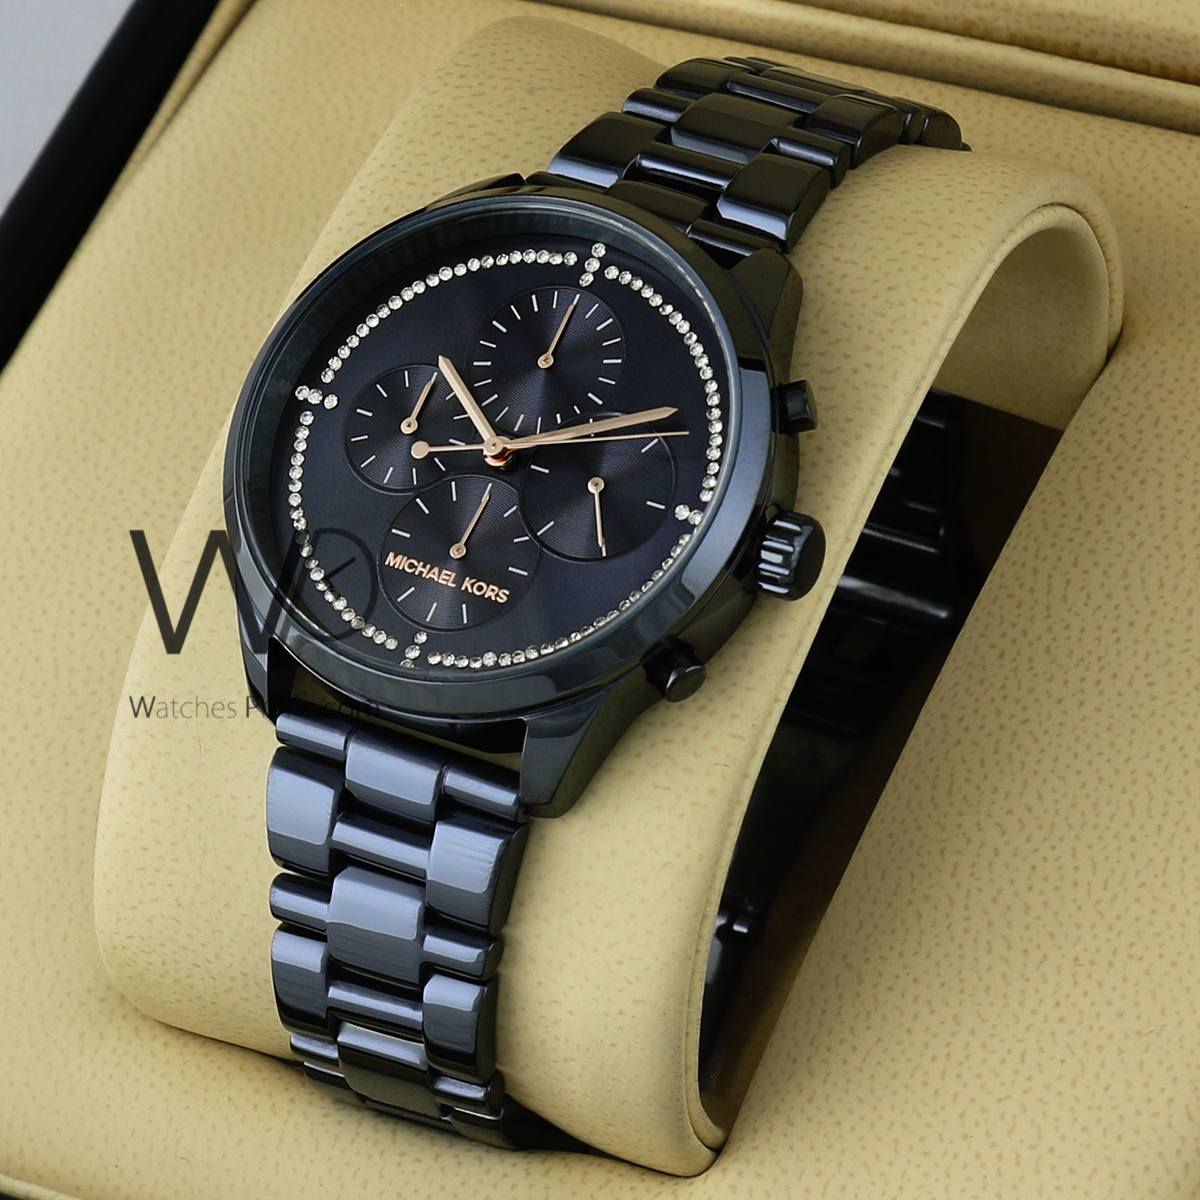 0d0b19debeccc MICHAEL KORS WATCH BLACK WITH STAINLESS STEEL BLACK BELT. SKU: W1731. Roll  over image to zoom in